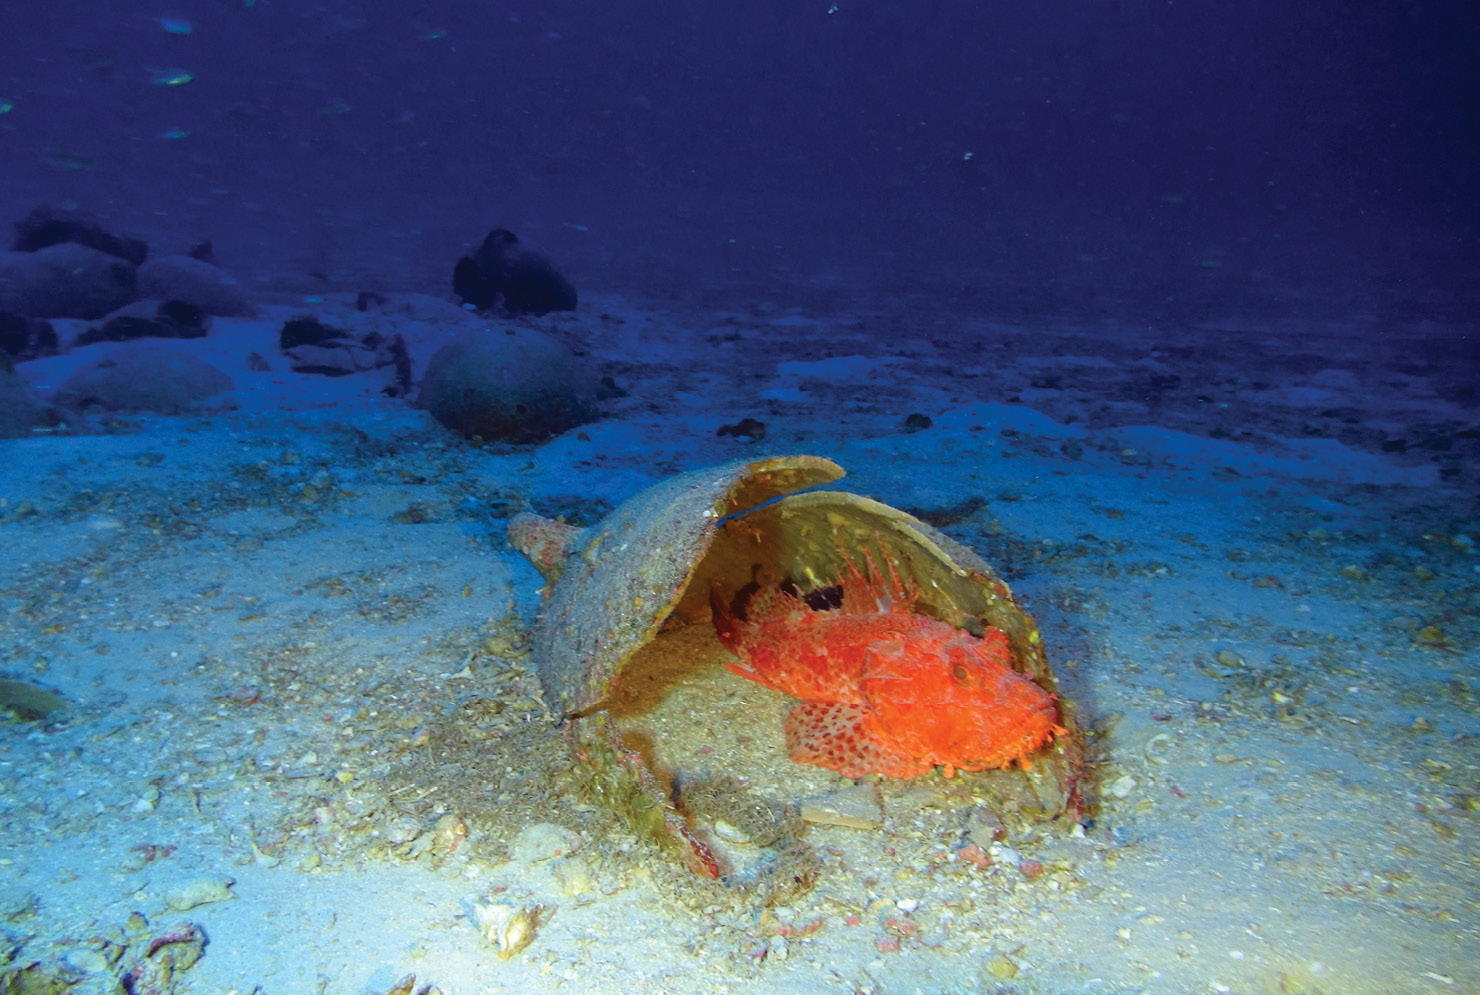 below The upper layer of cargo is exposed on the seabed. This mostly contains storage vessels, including this western Phoenician amphora that now provides a bijou residence for a rockfish.